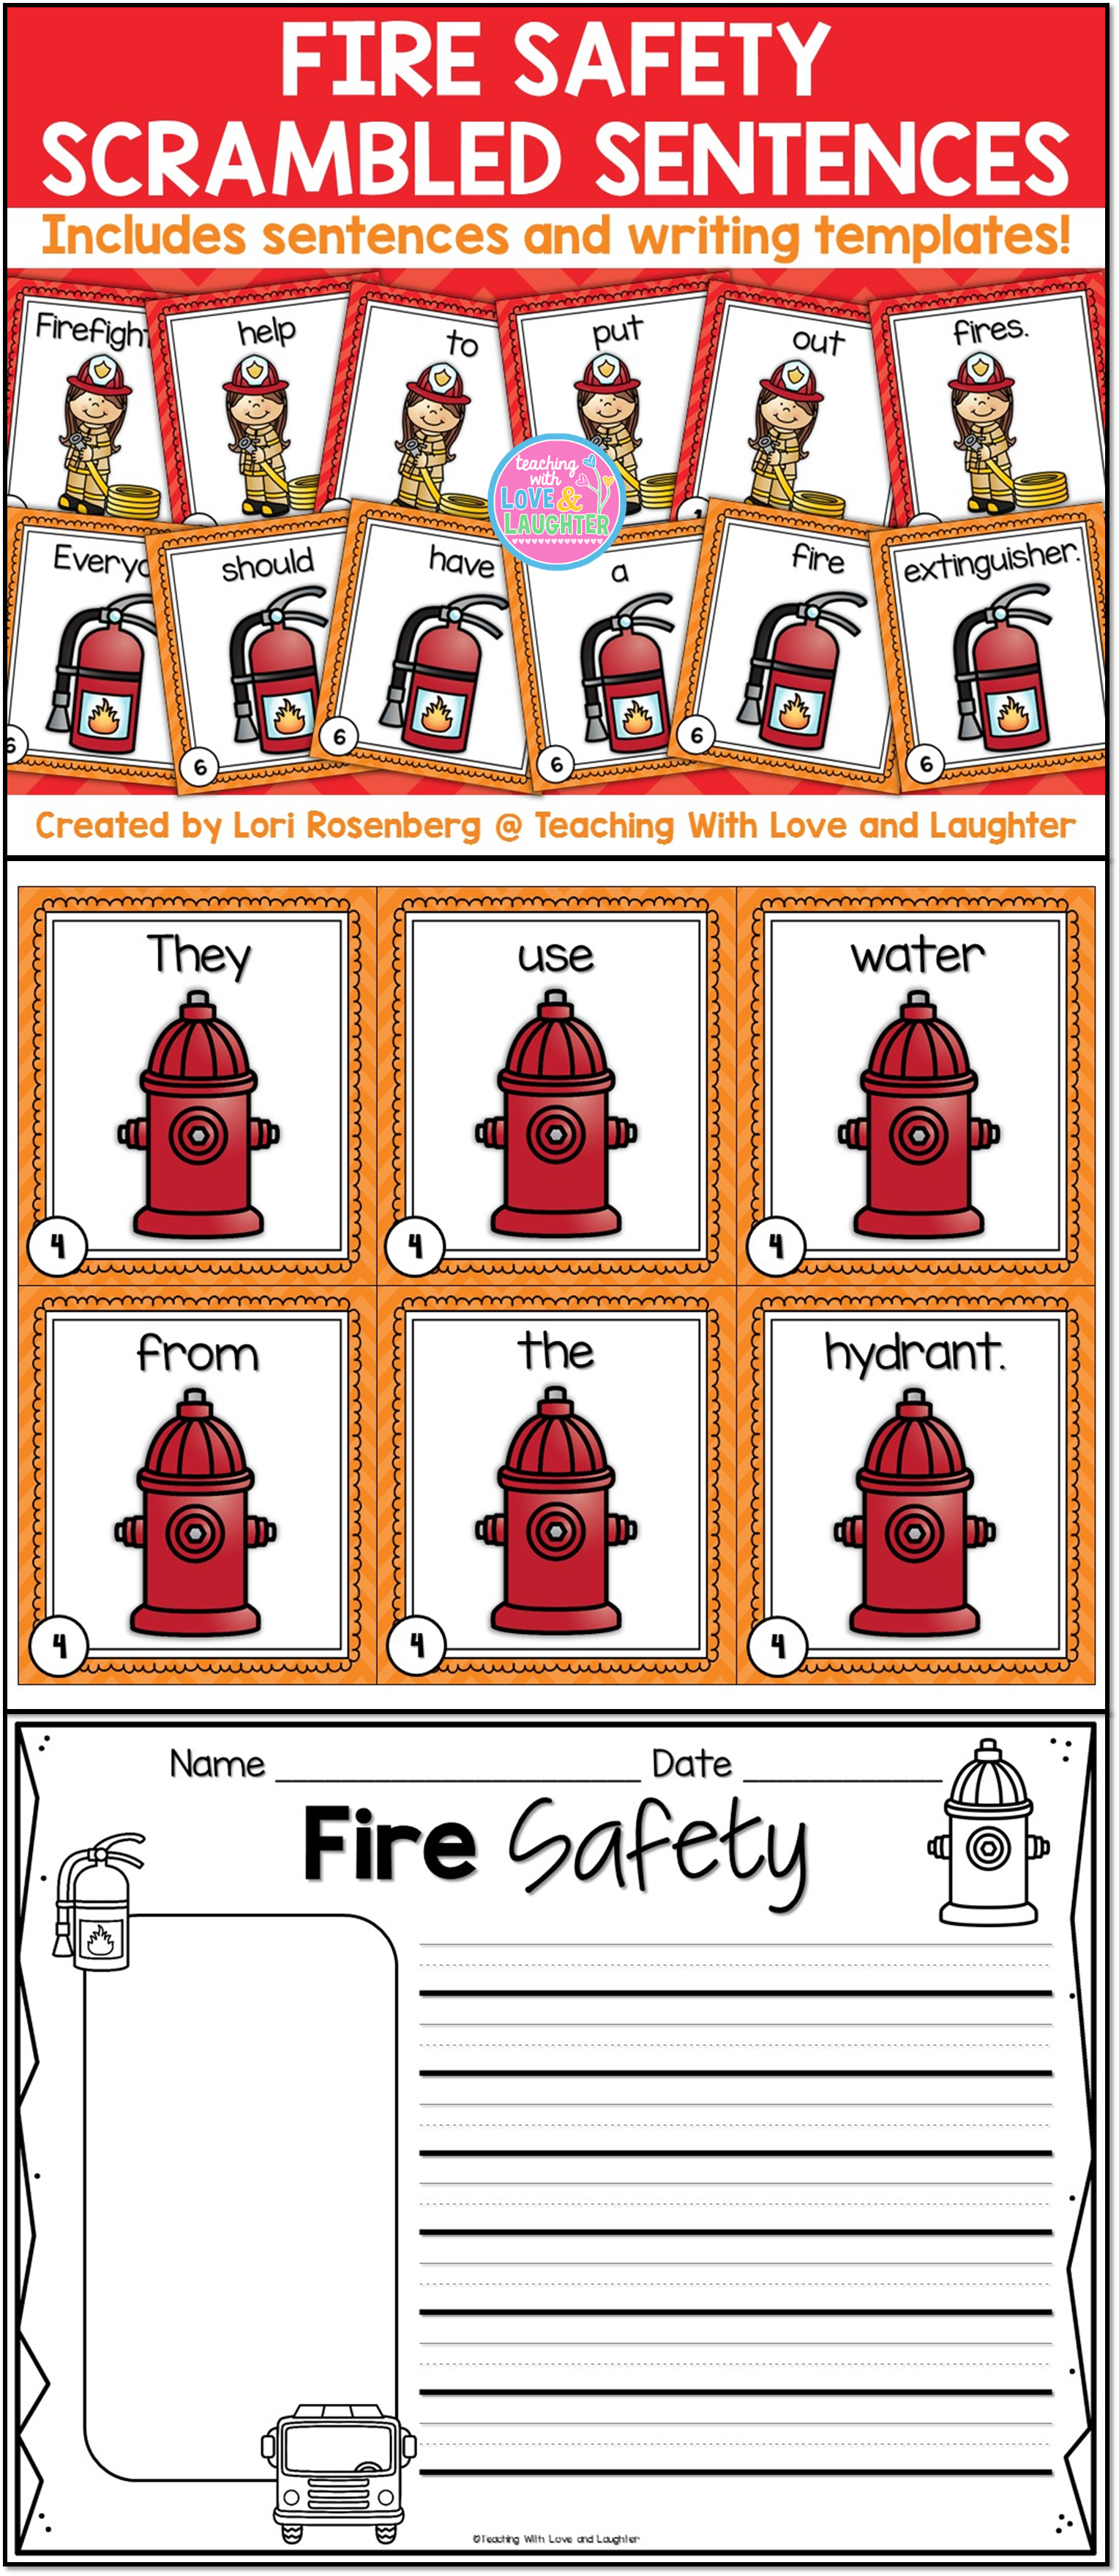 Fire Prevention Week Activities With Images